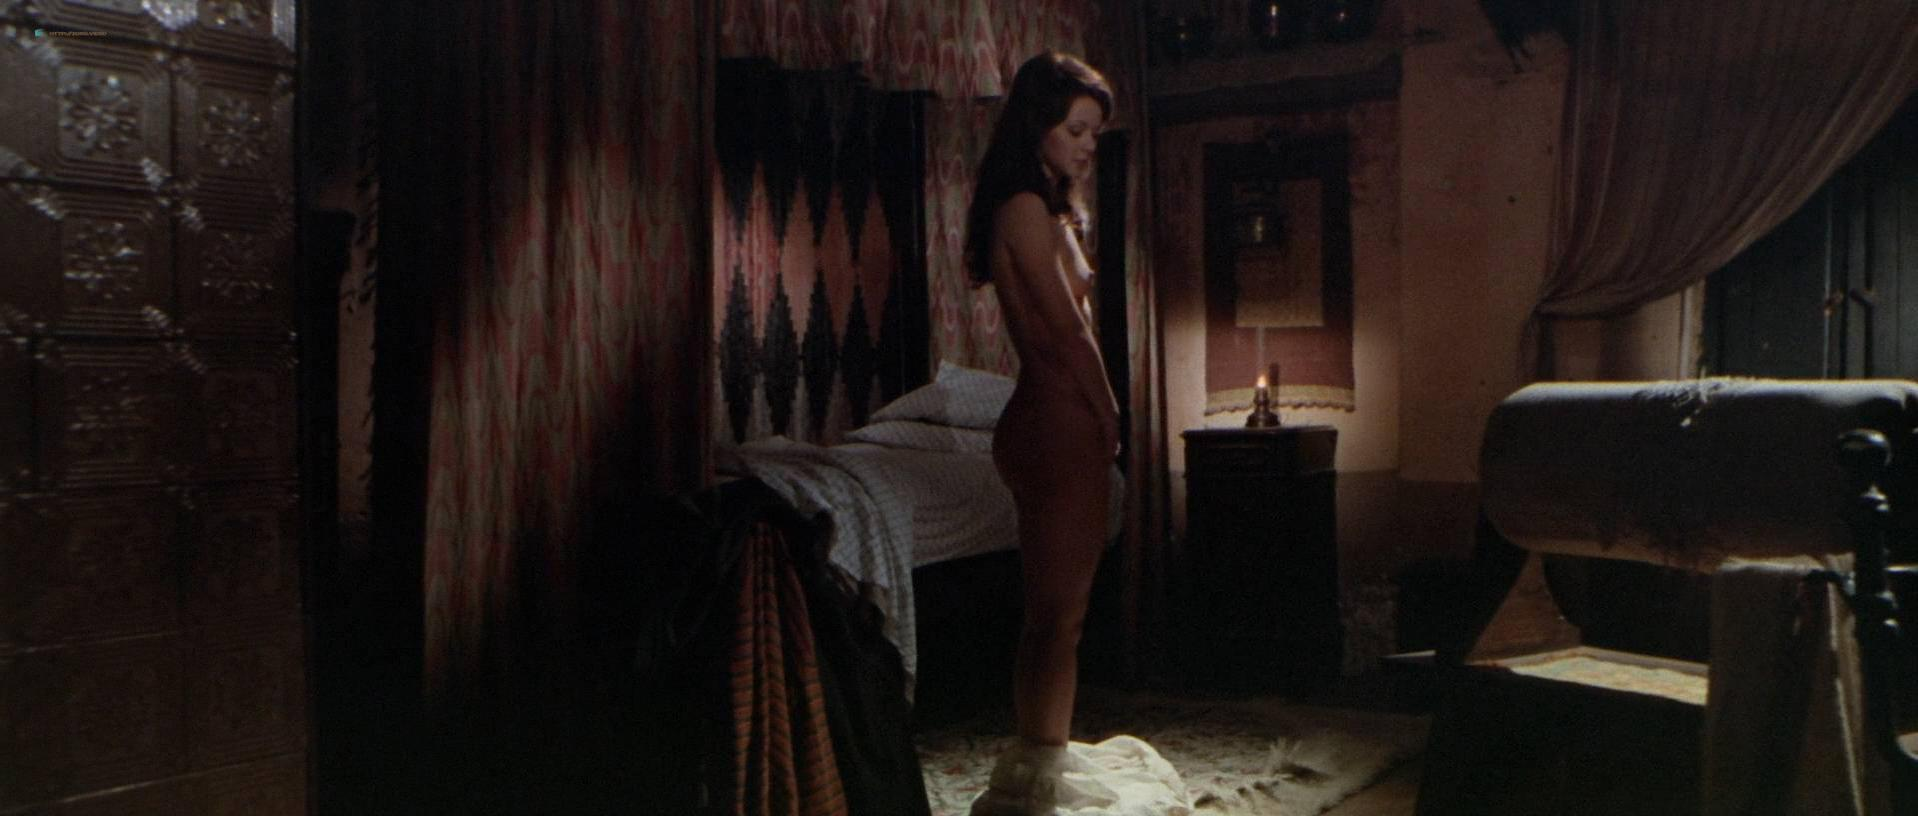 Agostina Belli nude - Night of the Devils (1972)